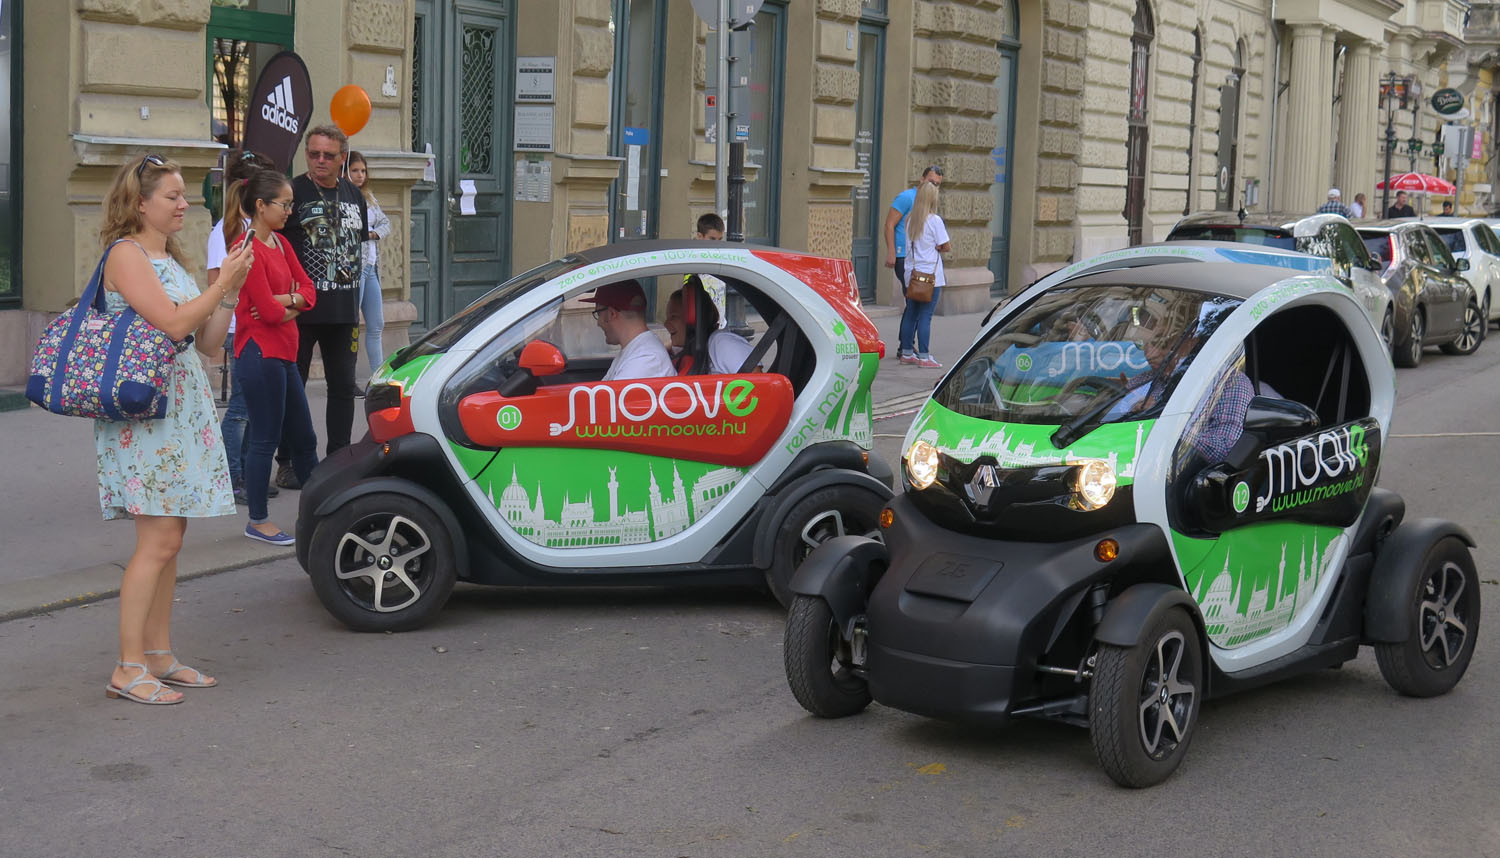 hungary-budapest-street-scenes-electric-cars